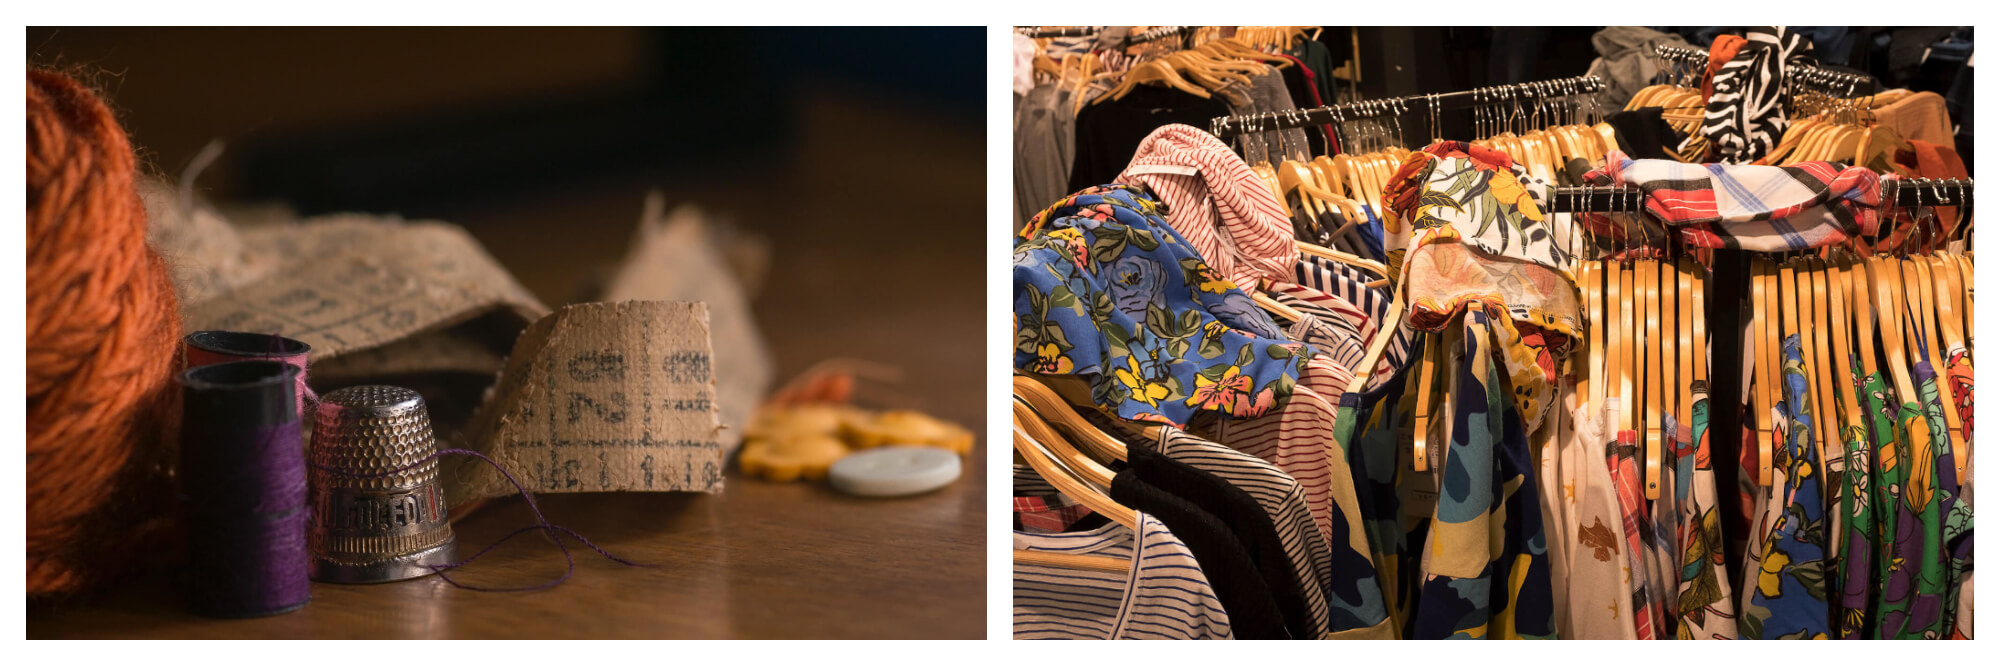 Left: a ball of orange yarn, an old tan colored tape measure, a few buttons, and a few spools of thread, all sat on a wooden table.  Right: racks of brightly colored tshirts, dozens hung neatly with several strewn messily on top.